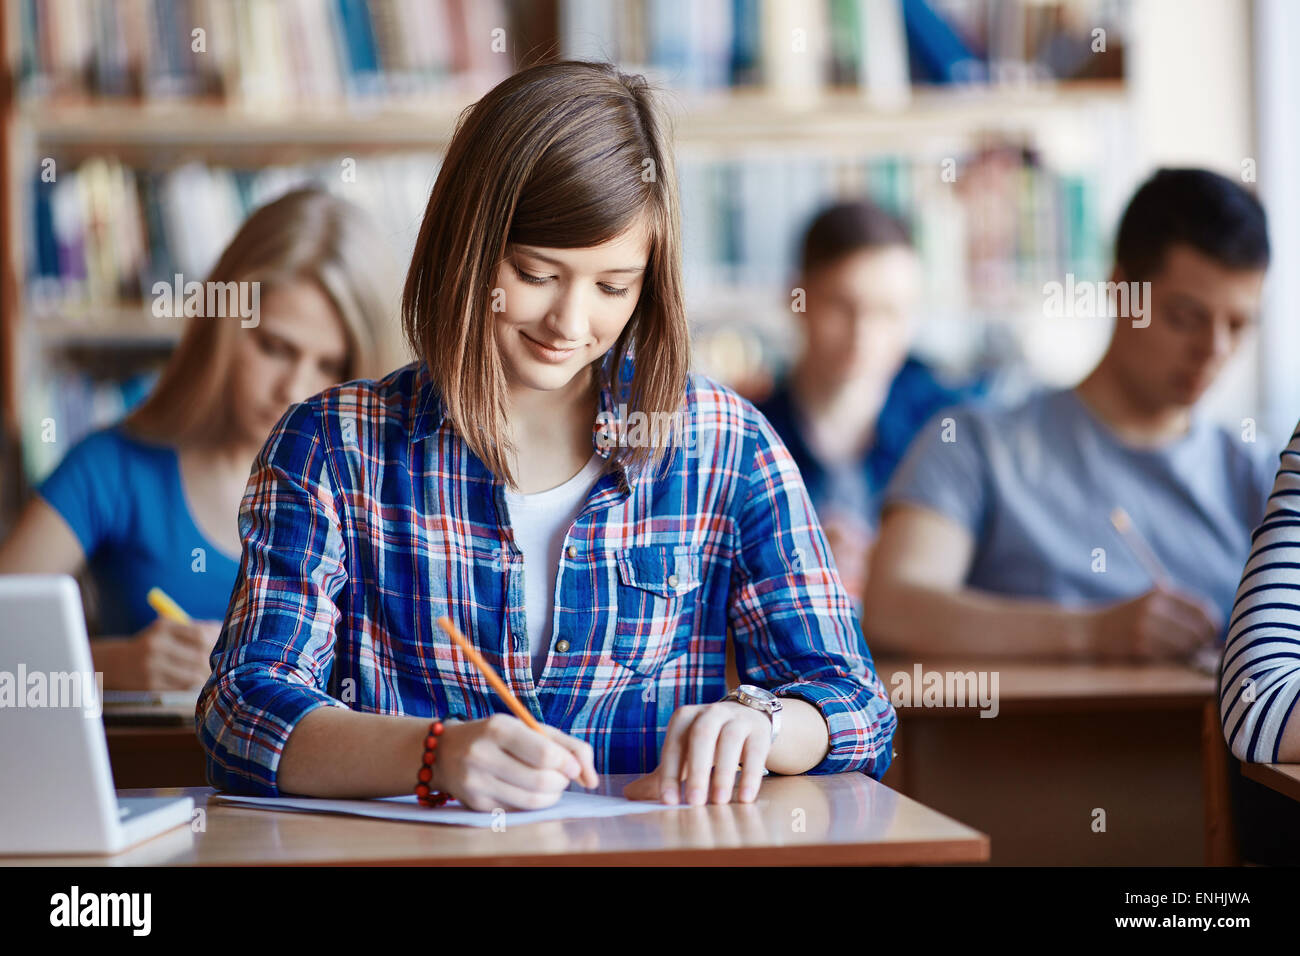 Highschool student carrying out task at workplace - Stock Image